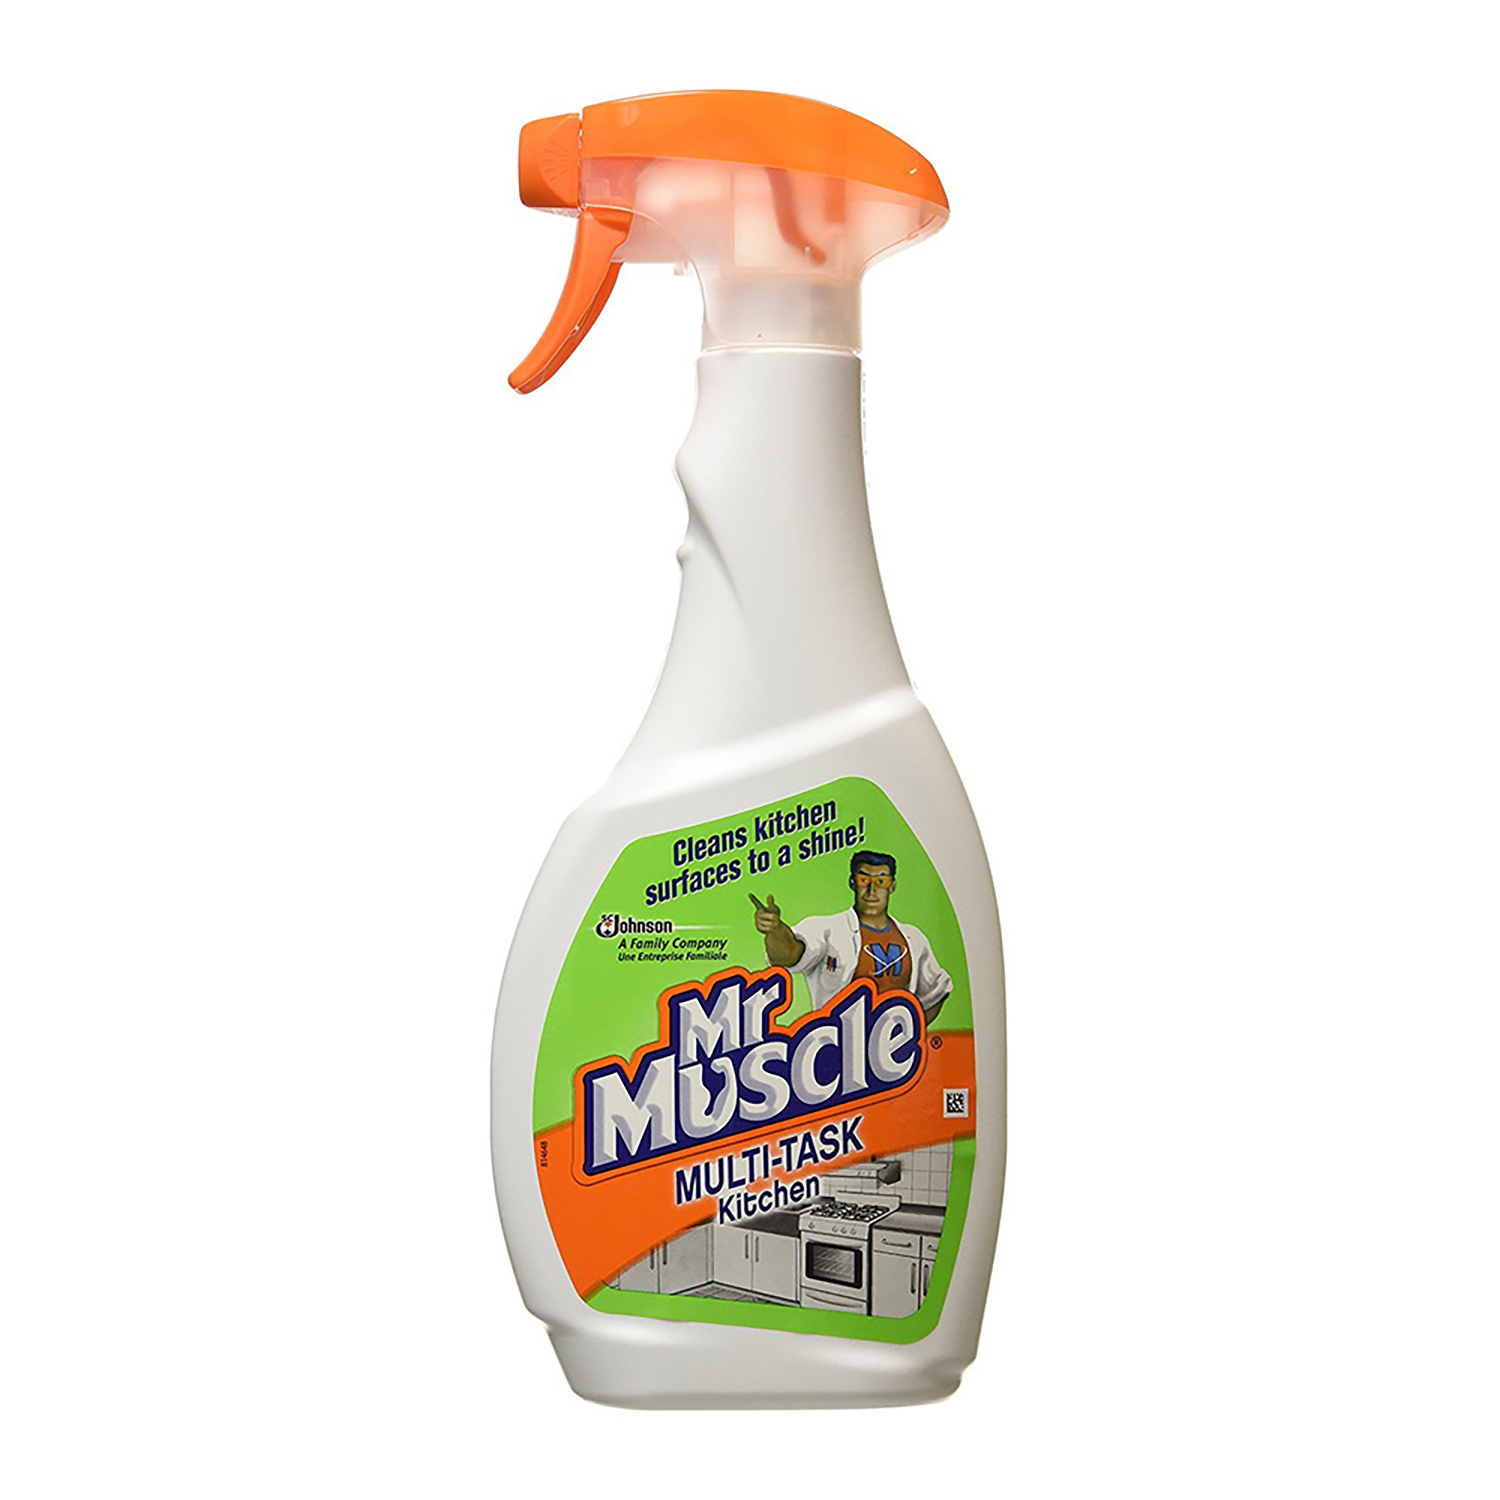 Multipurpose Cleaning Mr Muscle Multi-Task Kitchen Trigger Spray 750ml Ref 1004040